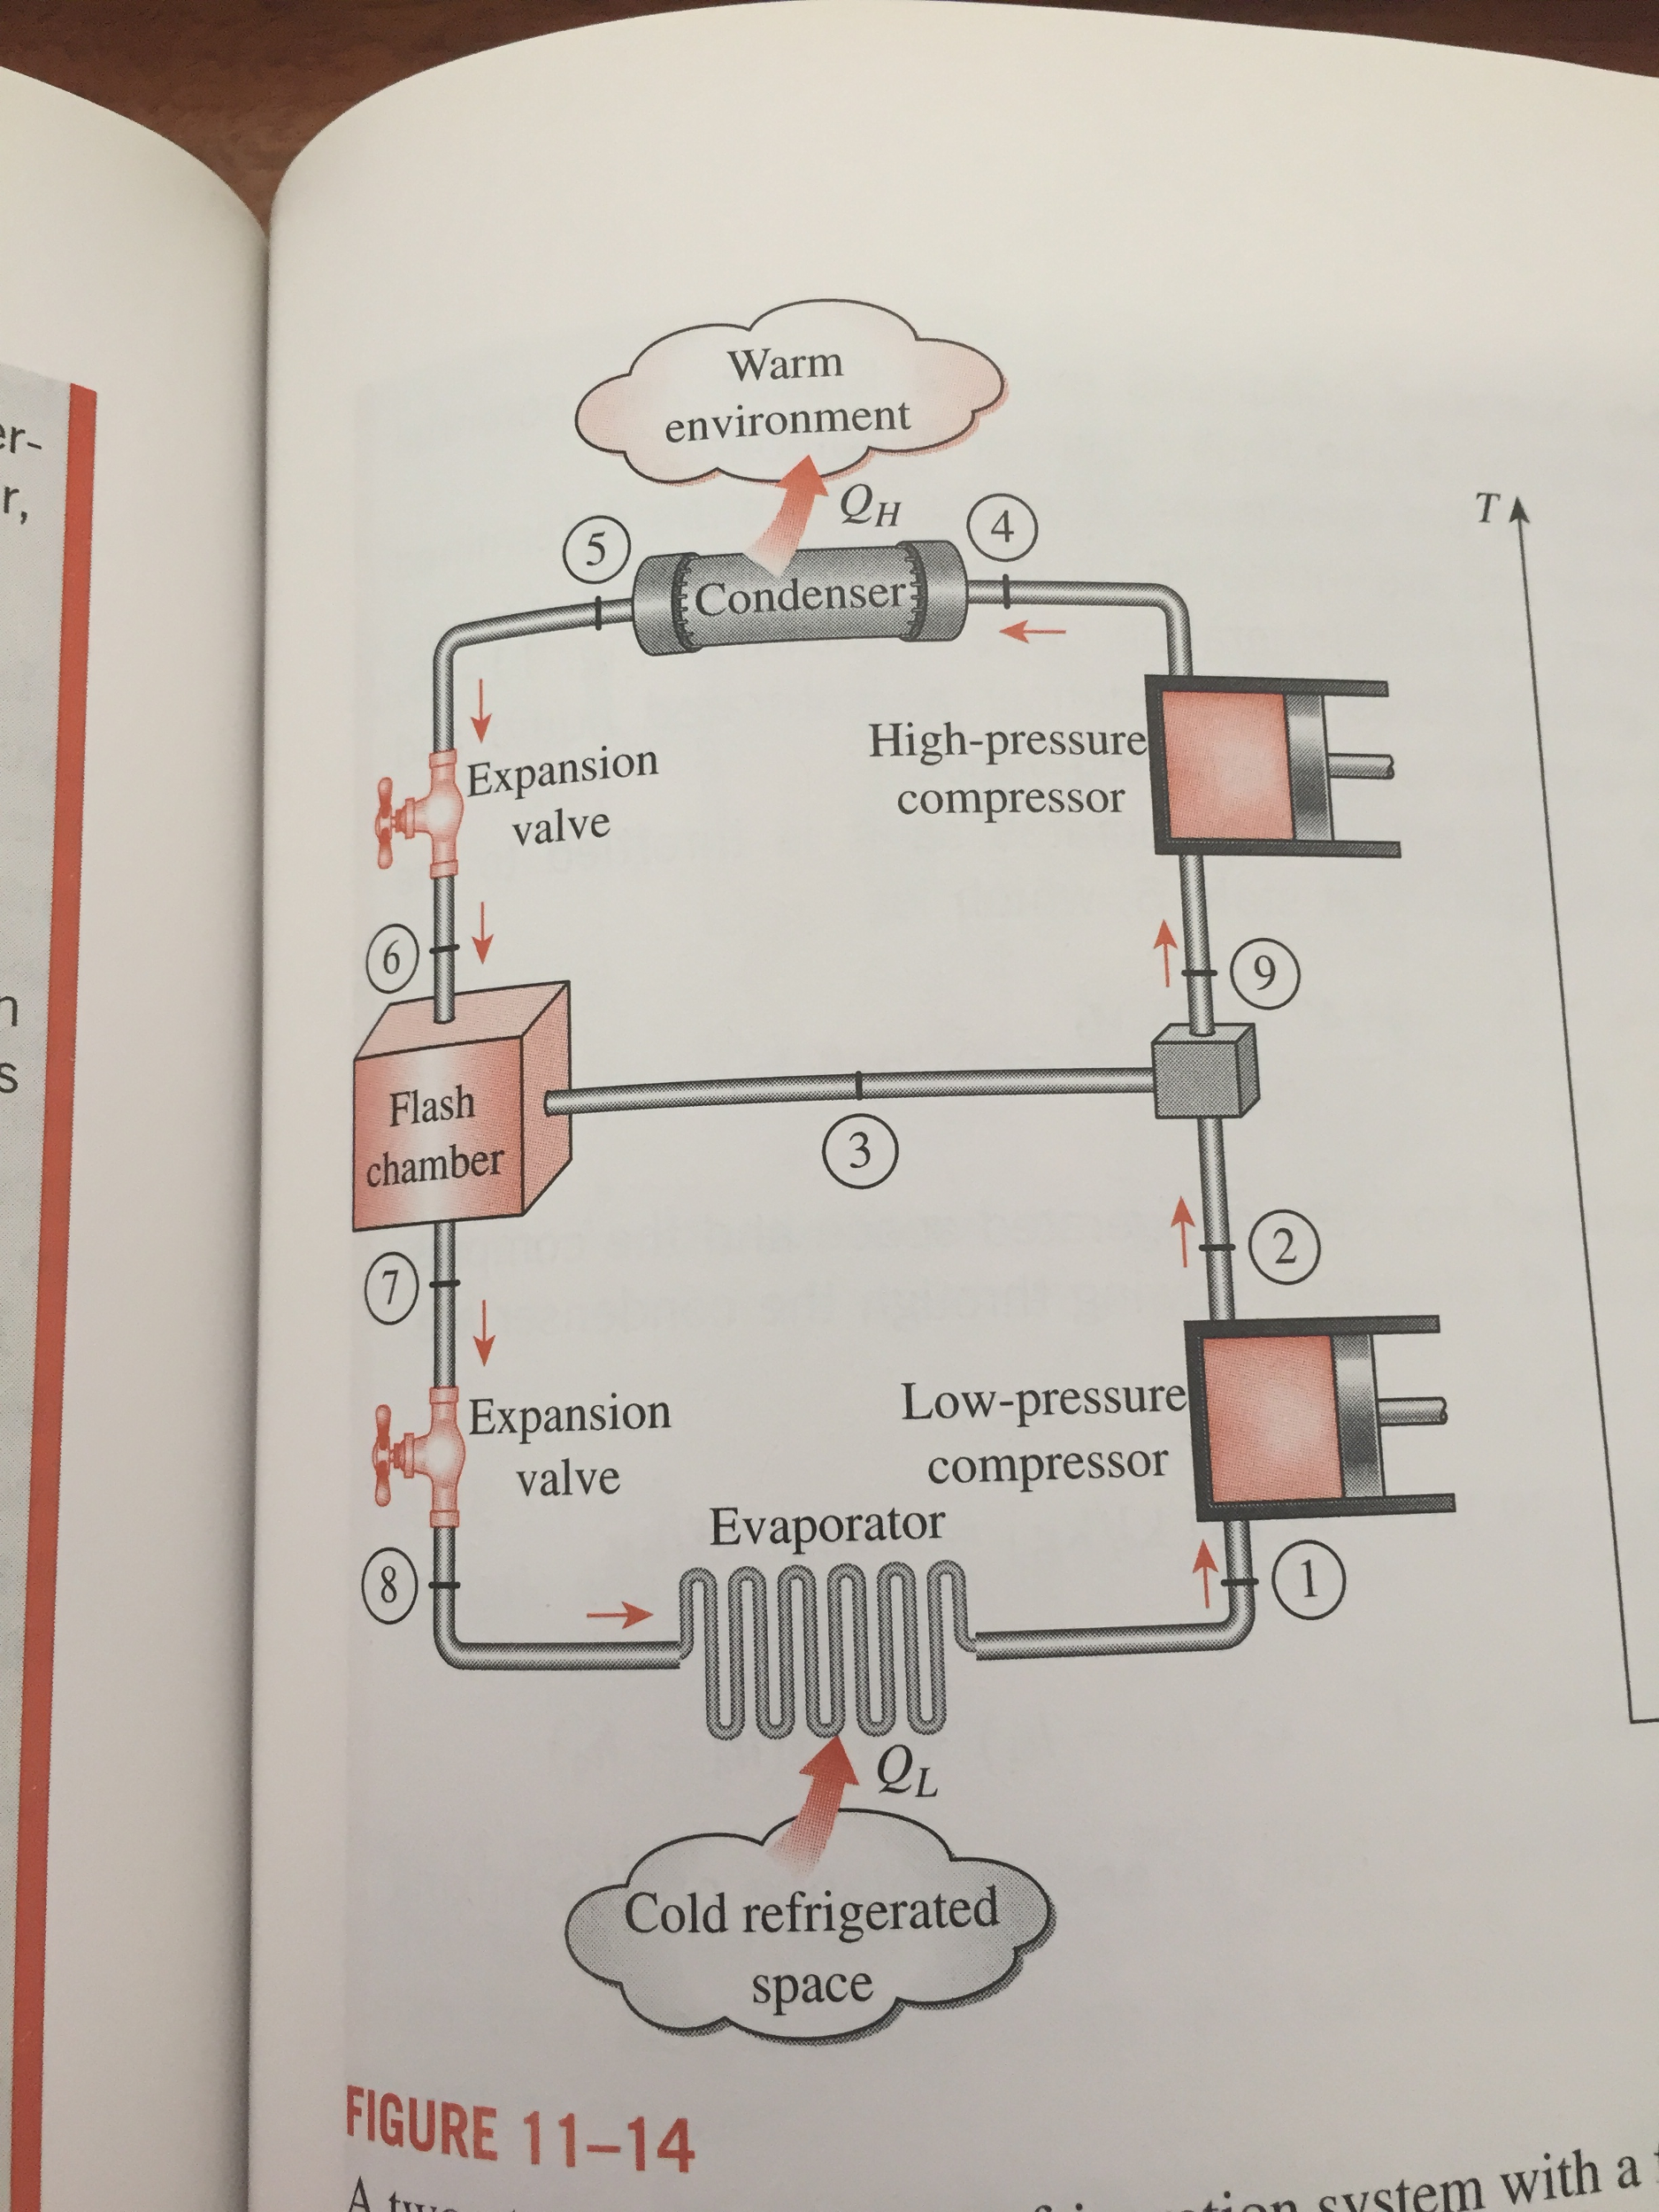 Consider a two stage cascade refrigeration cycle chegg consider a two stage cascade refrigeration cycle pooptronica Images